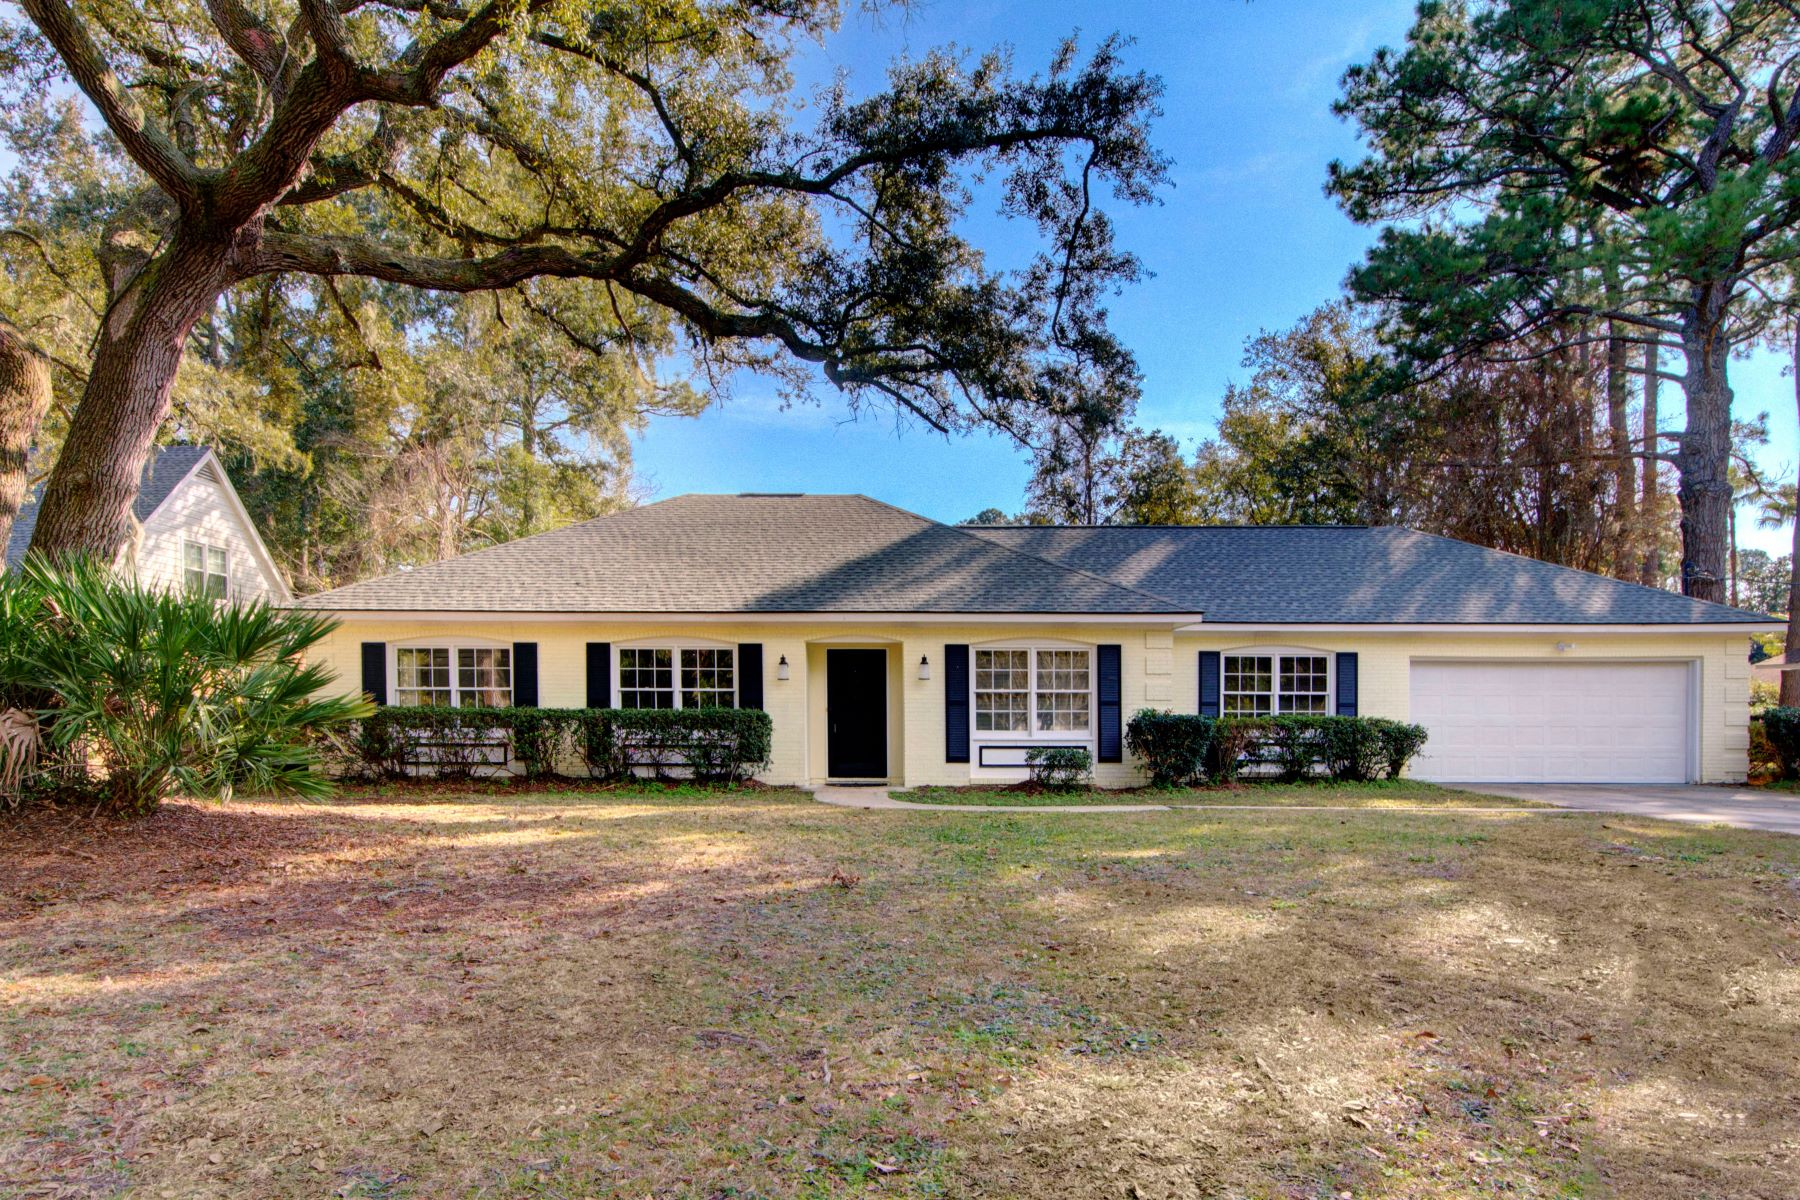 Single Family Homes for Active at 1312 Fairway Road Brunswick, Georgia 31525 United States